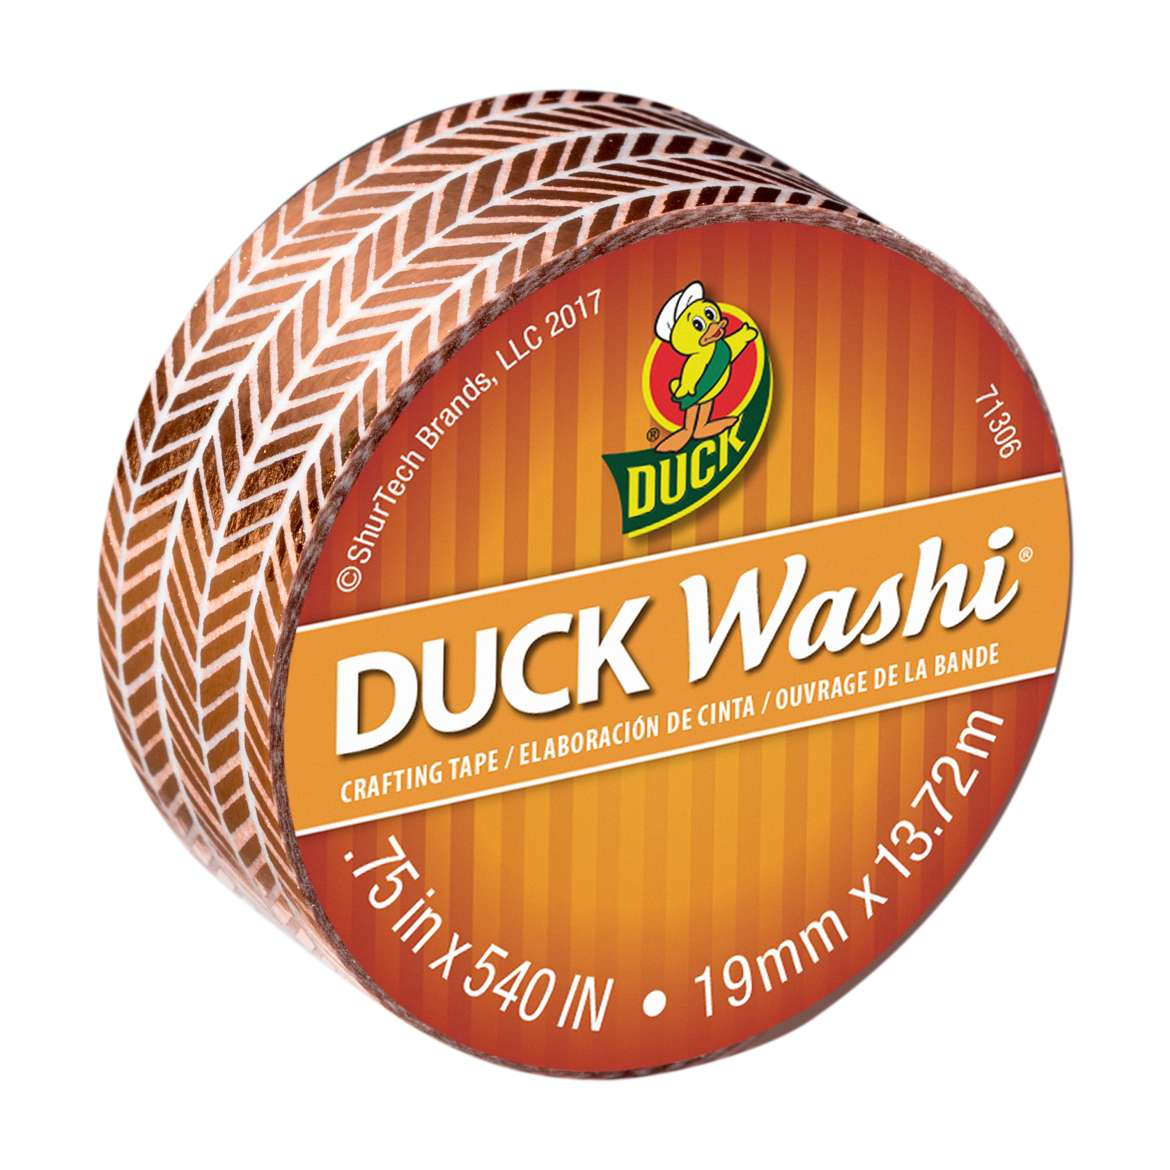 Duck Washi® Crafting Tape - Metallic Herringbone, 0.75 in. X 15 yd. Image